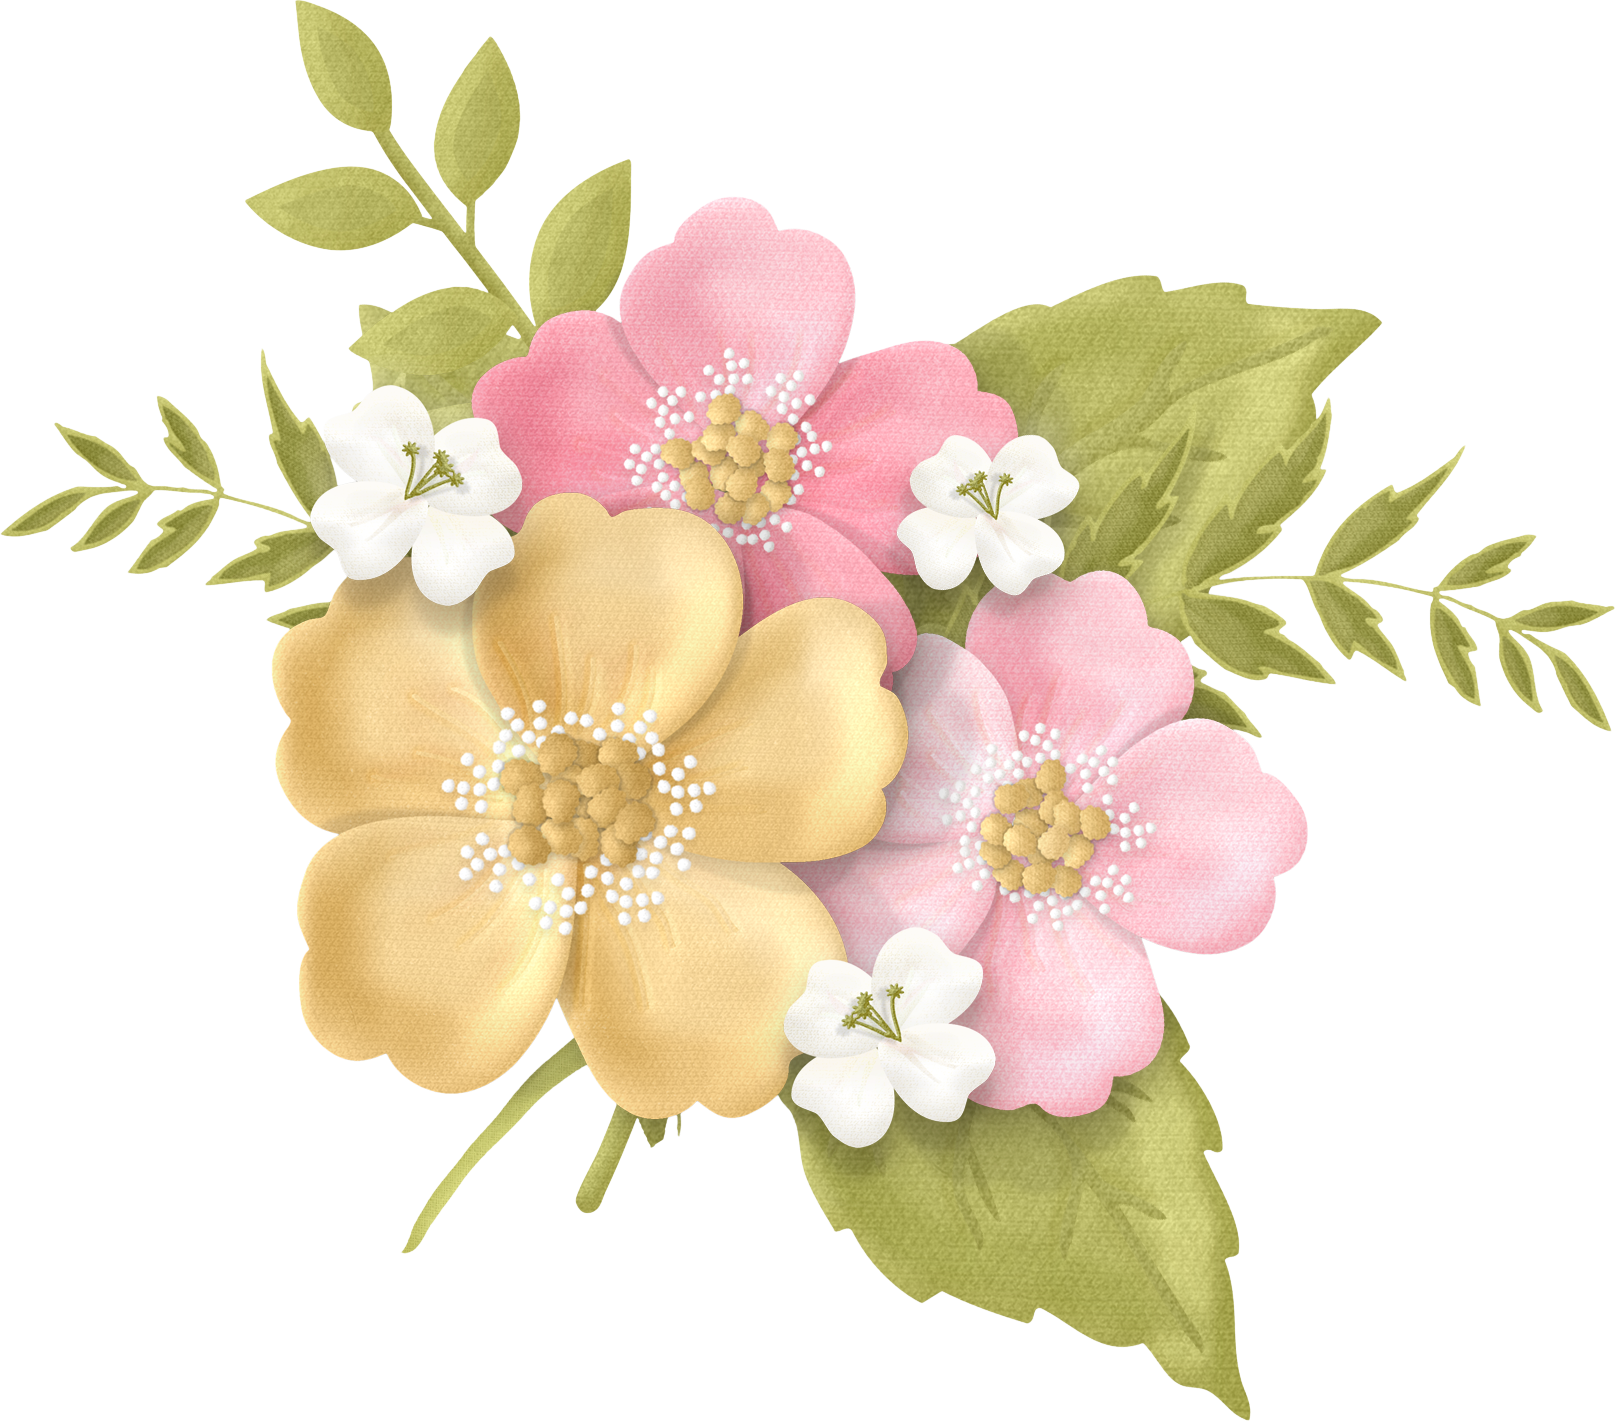 Country flower png. Pin by disturbedkorngirl on